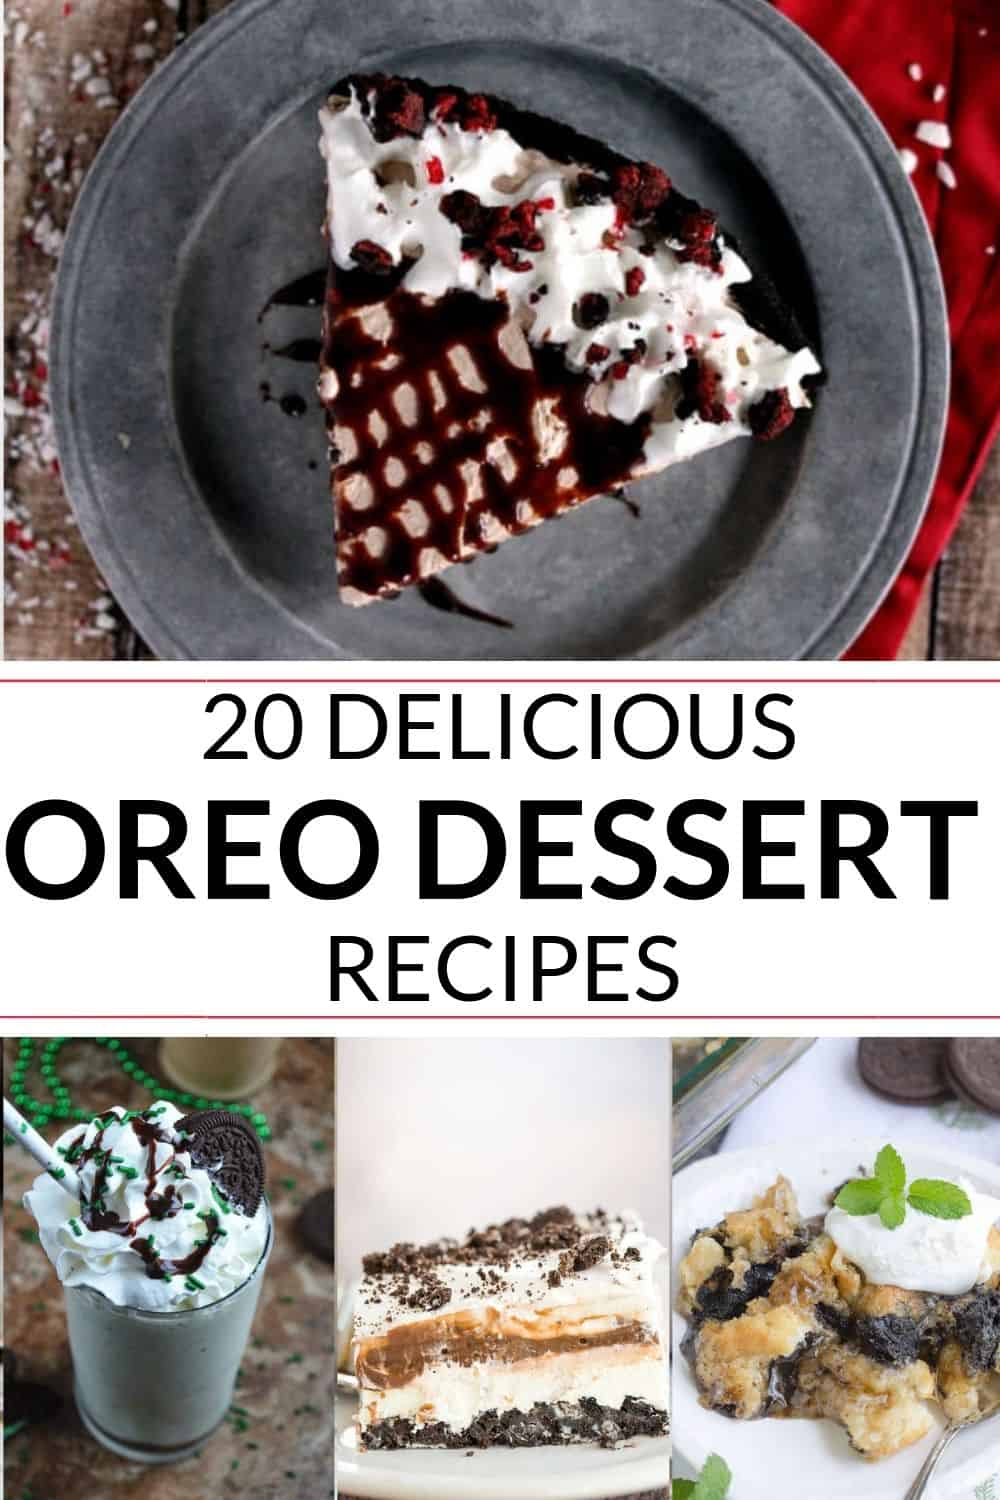 Four out of the 20 delicious oreo recipes that is absolutely incredible.